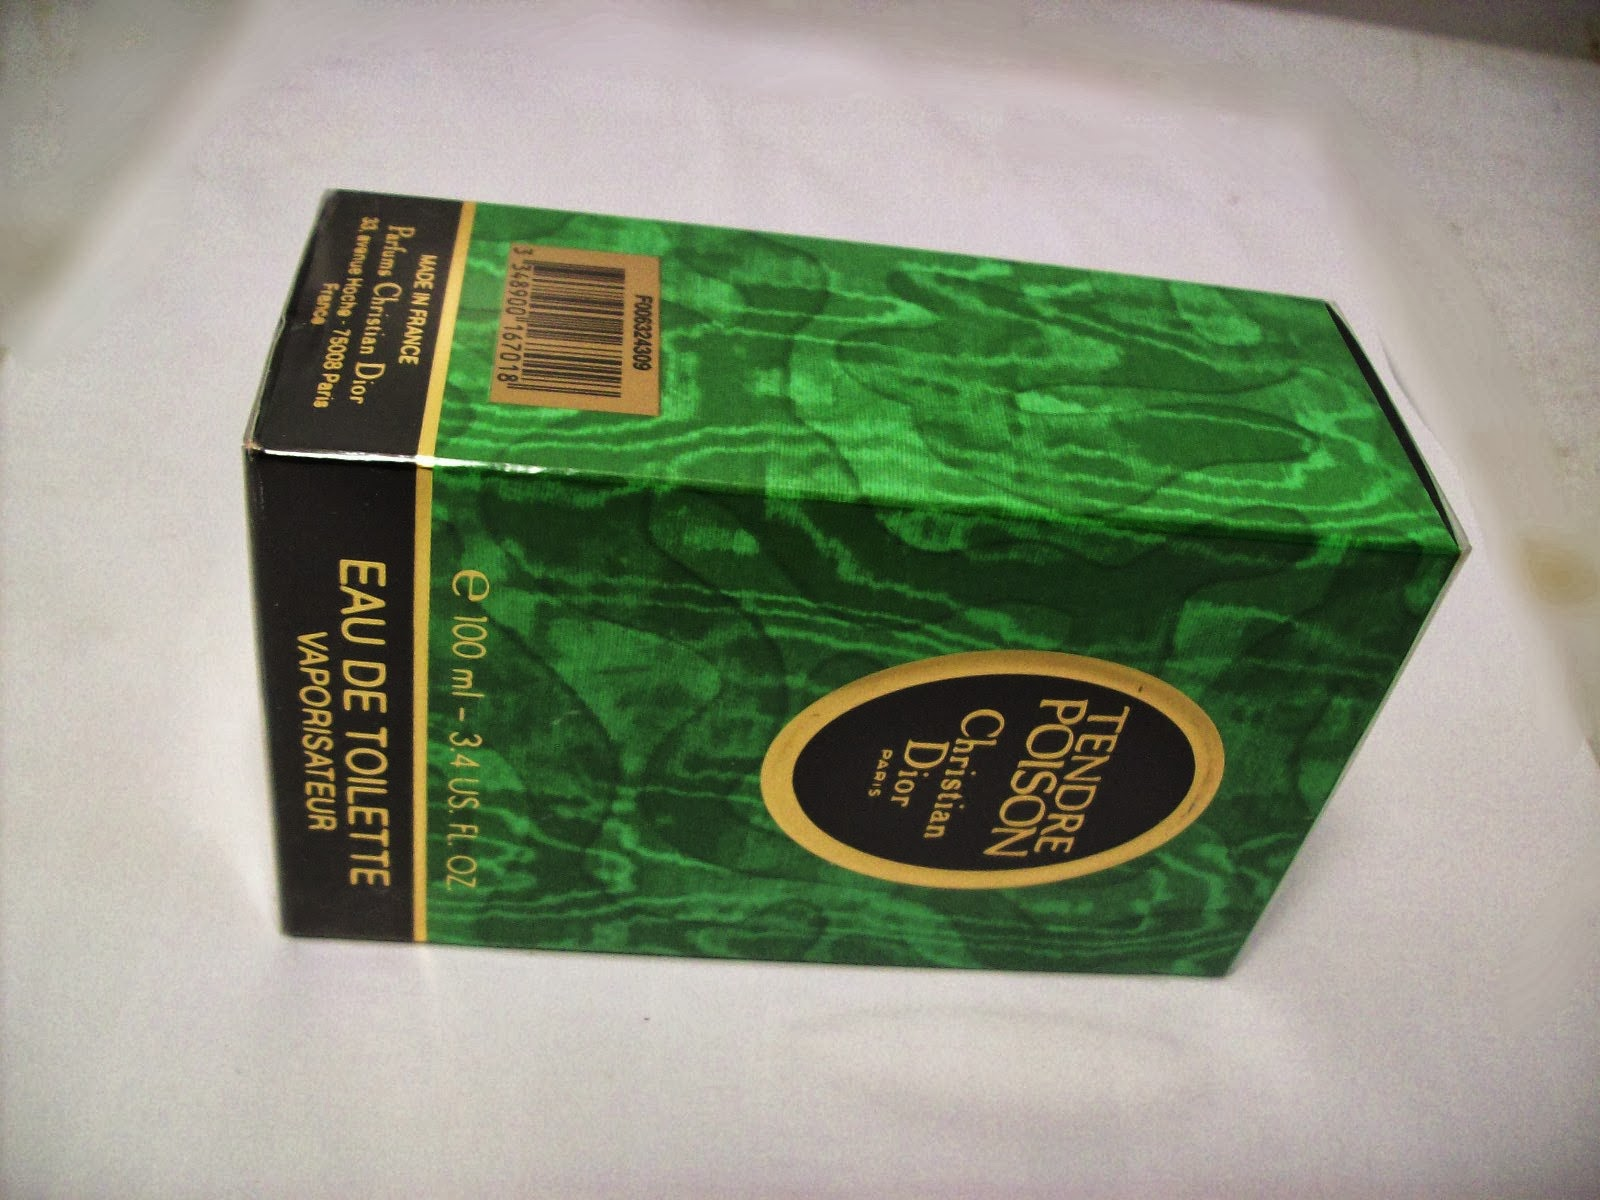 Raiders Of The Lost Scent How To Recognize Christian Dior Perfumes